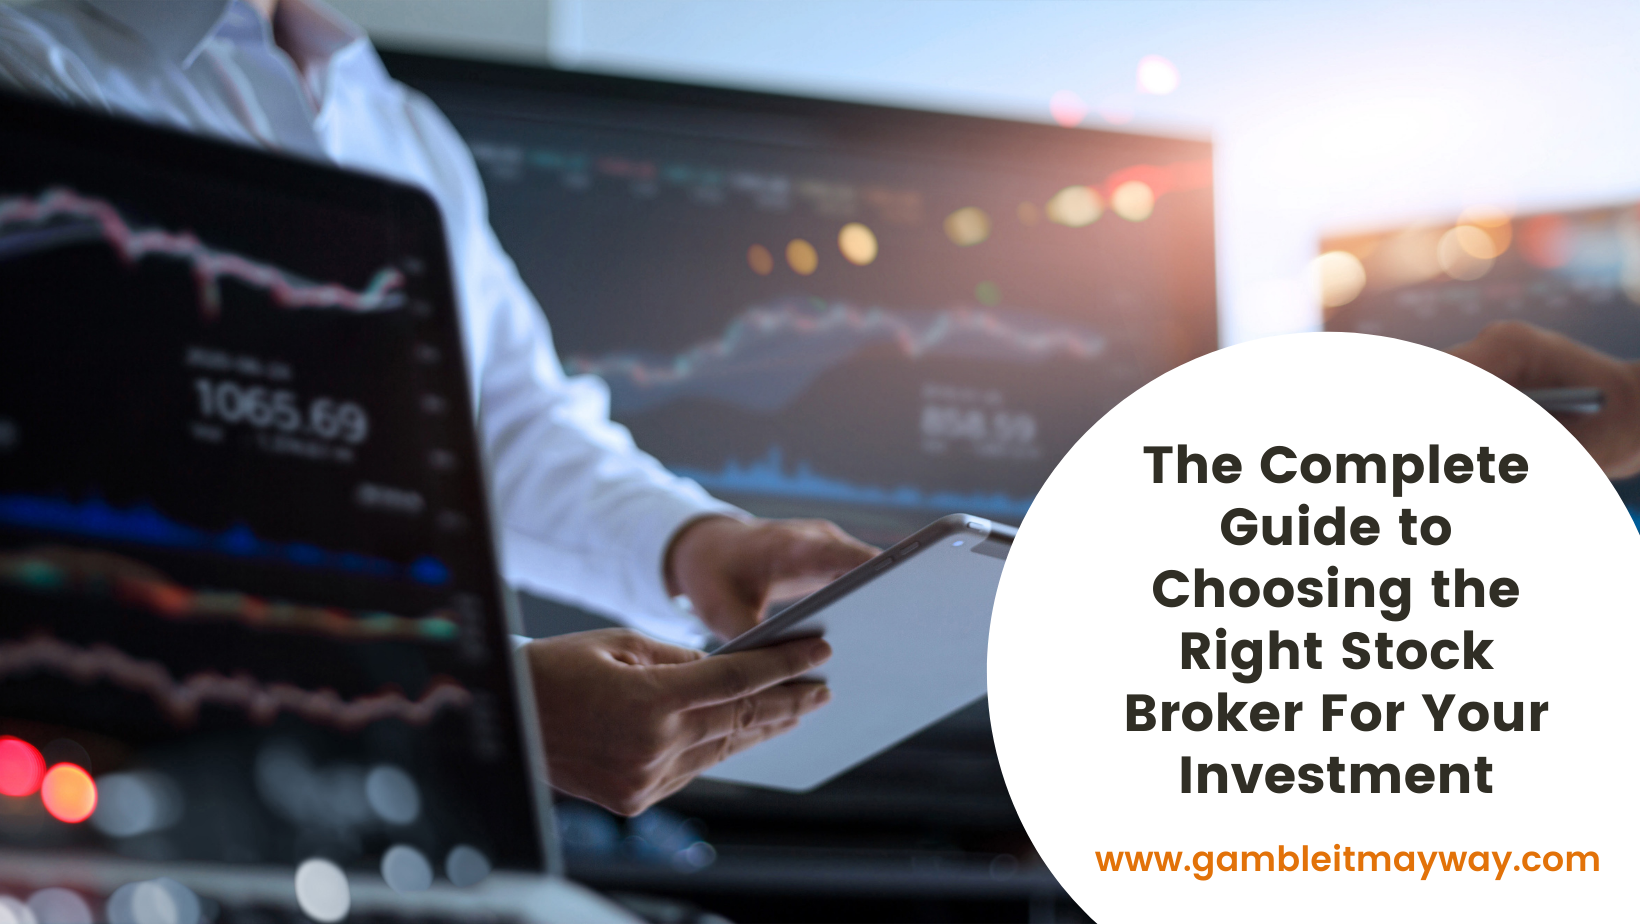 The Complete Guide to Choosing the Right Stock Broker For Your Investment